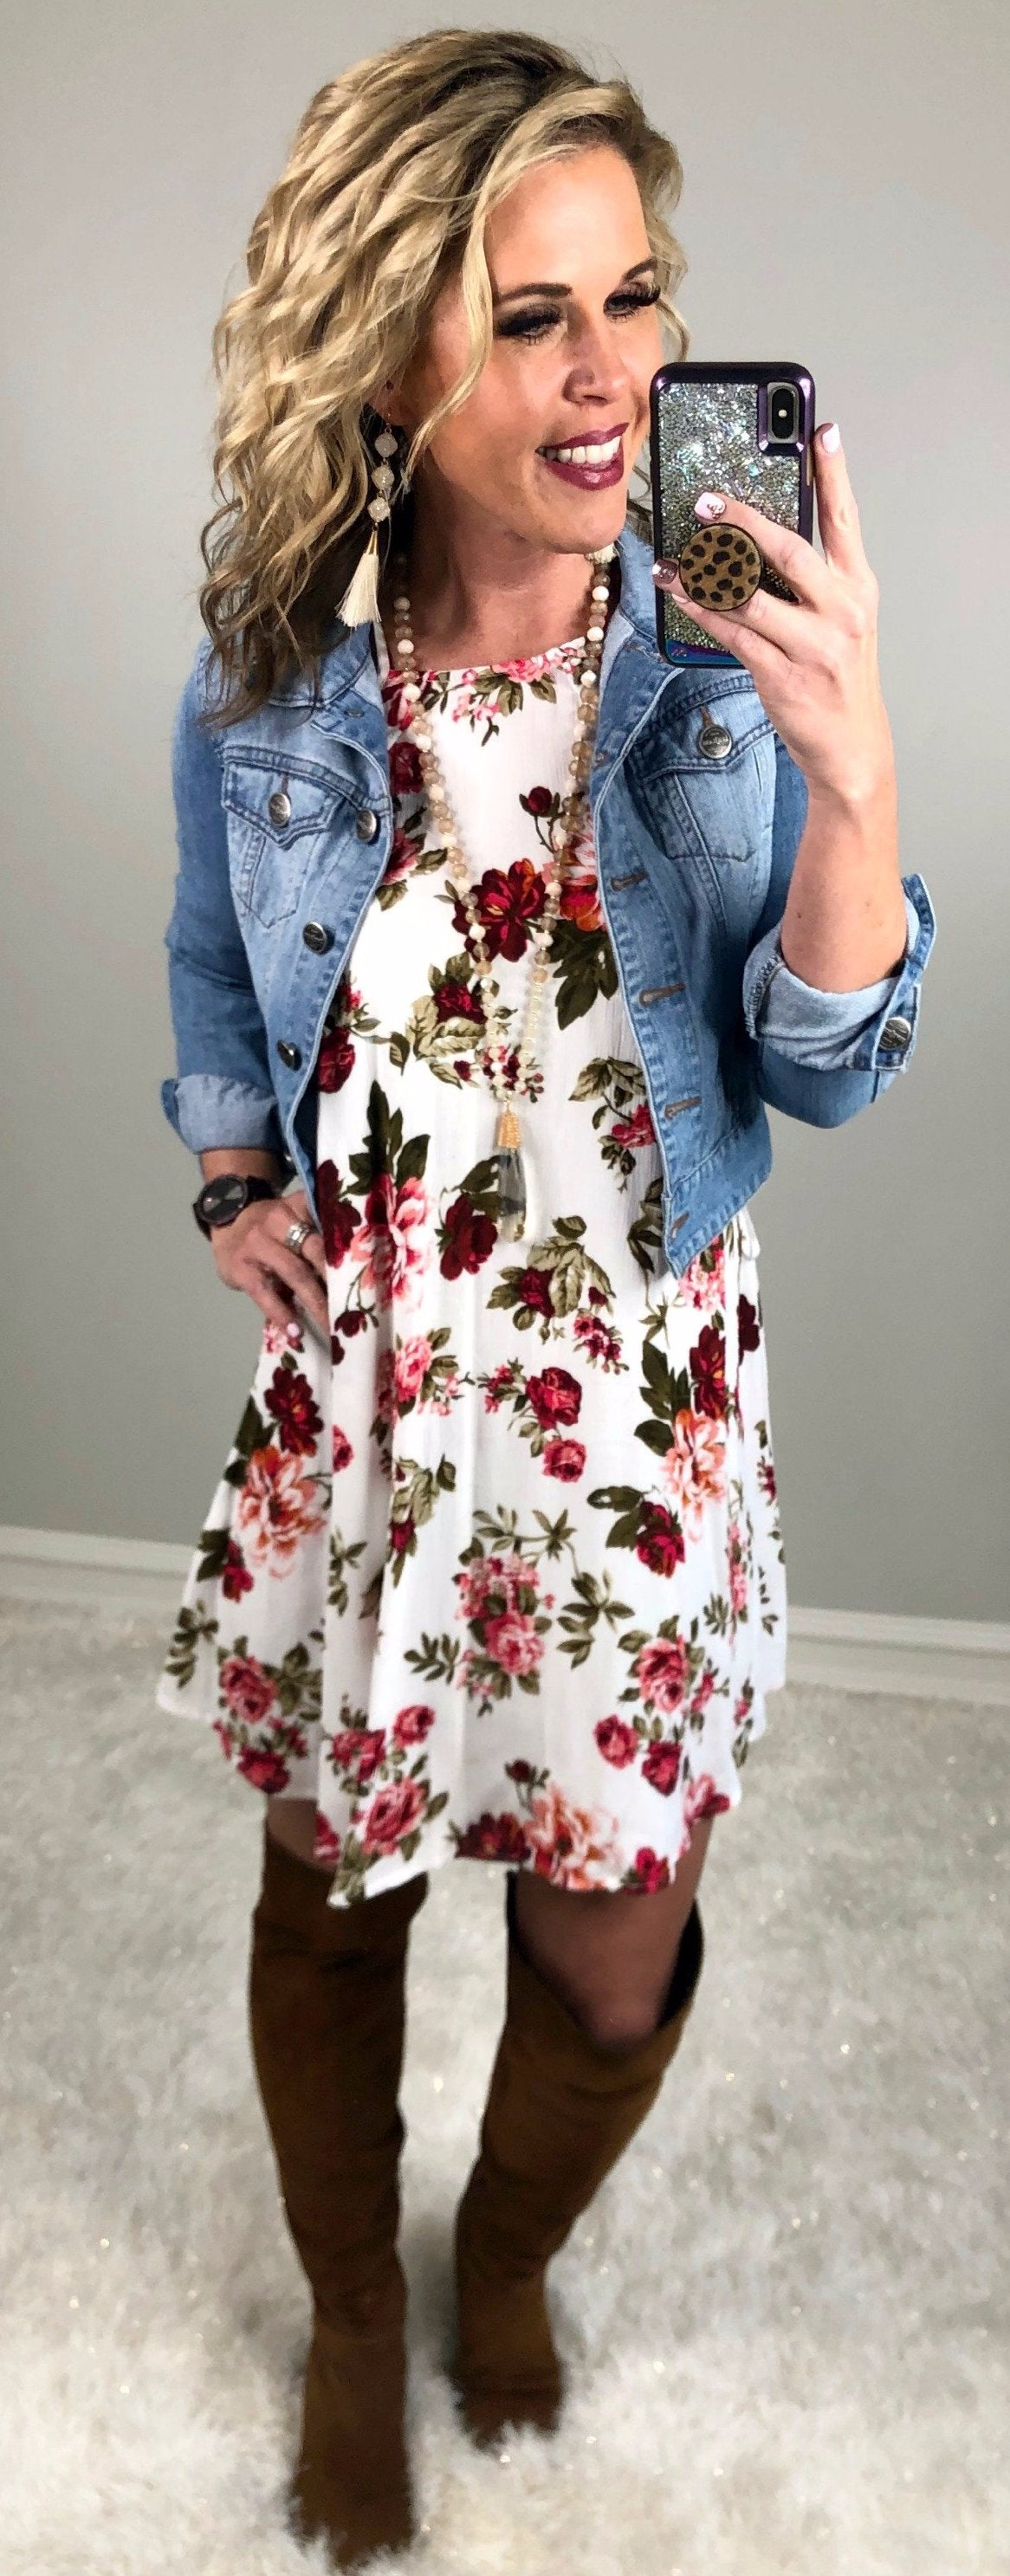 Day Dreaming Floral Dress: White